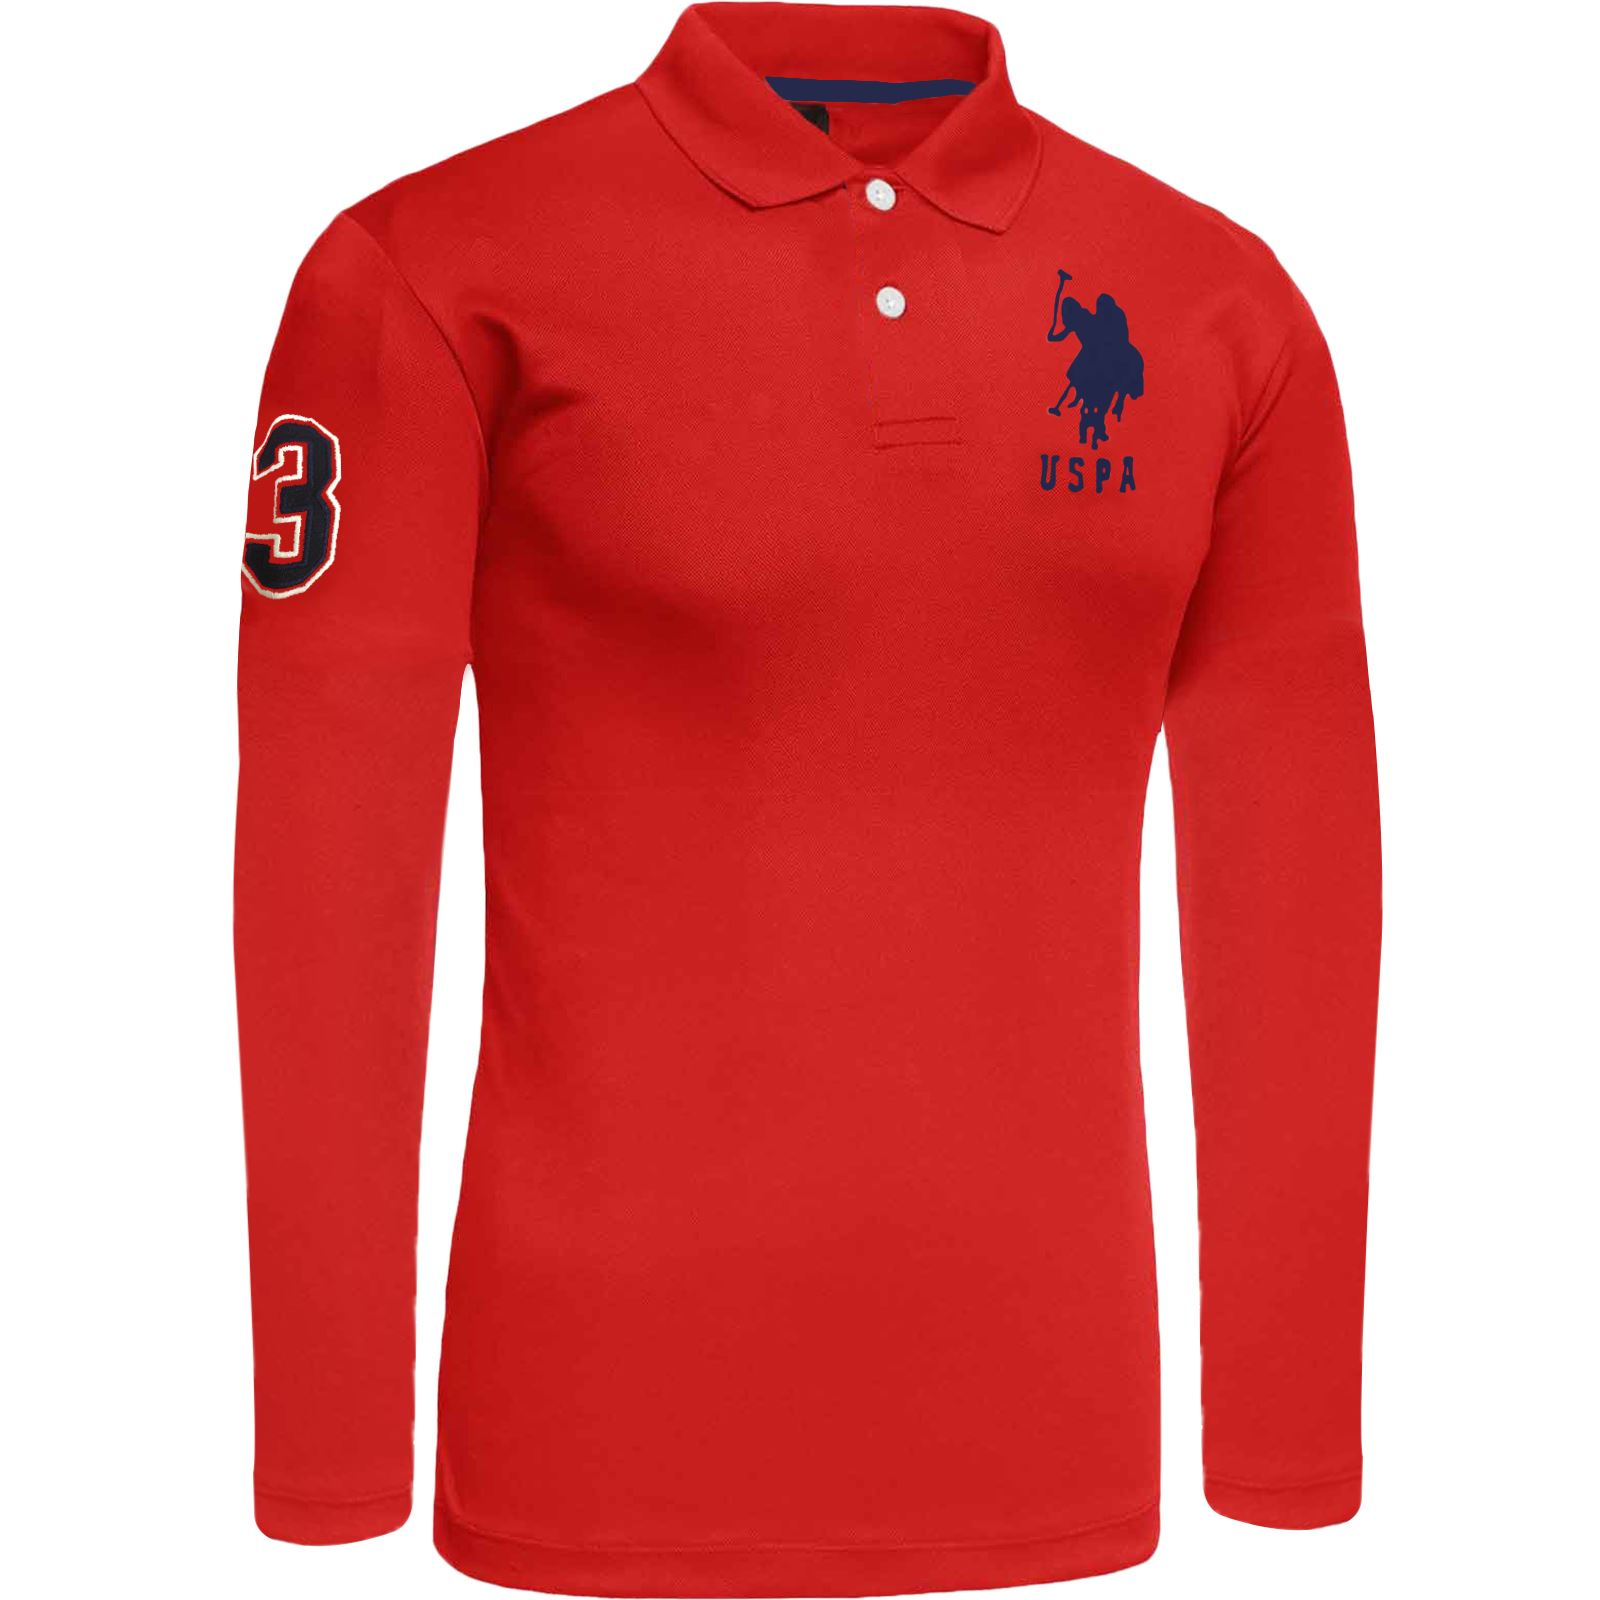 Mens Long Sleeve Polo Shirt Top Us Polo Assn Branded Big